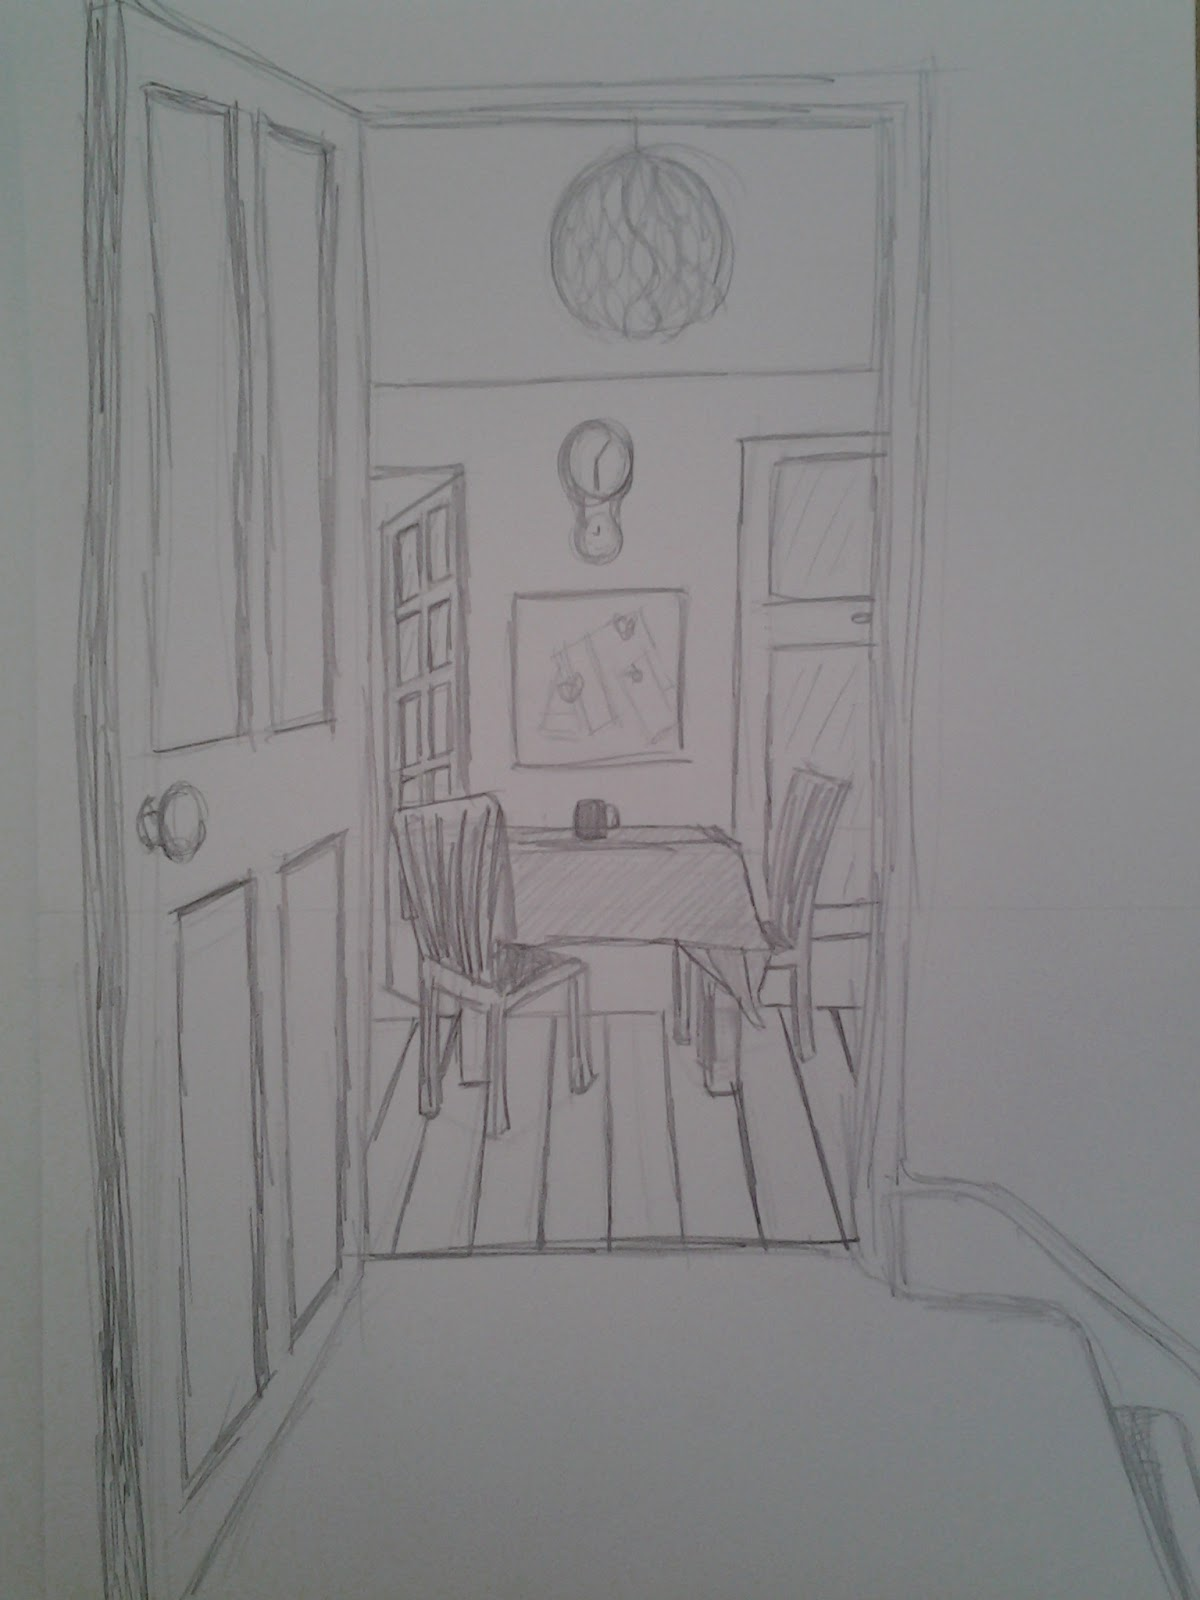 Open door drawing perspective - For This Exercise I Drew A Scene From An Open Door Leading Into My Kitchen With A Table And Chairs Window And Open Door Leading Into The Garden